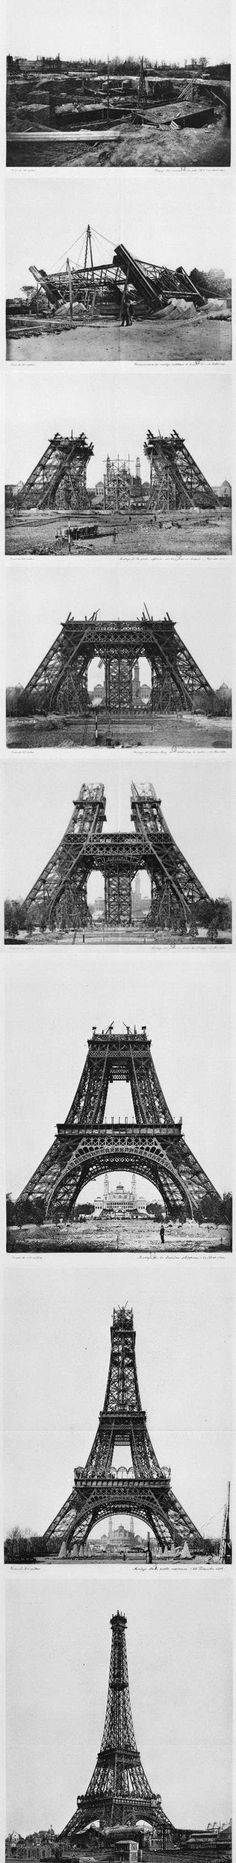 Construction of the Eiffel Tower                                                                                                                                                                                 More